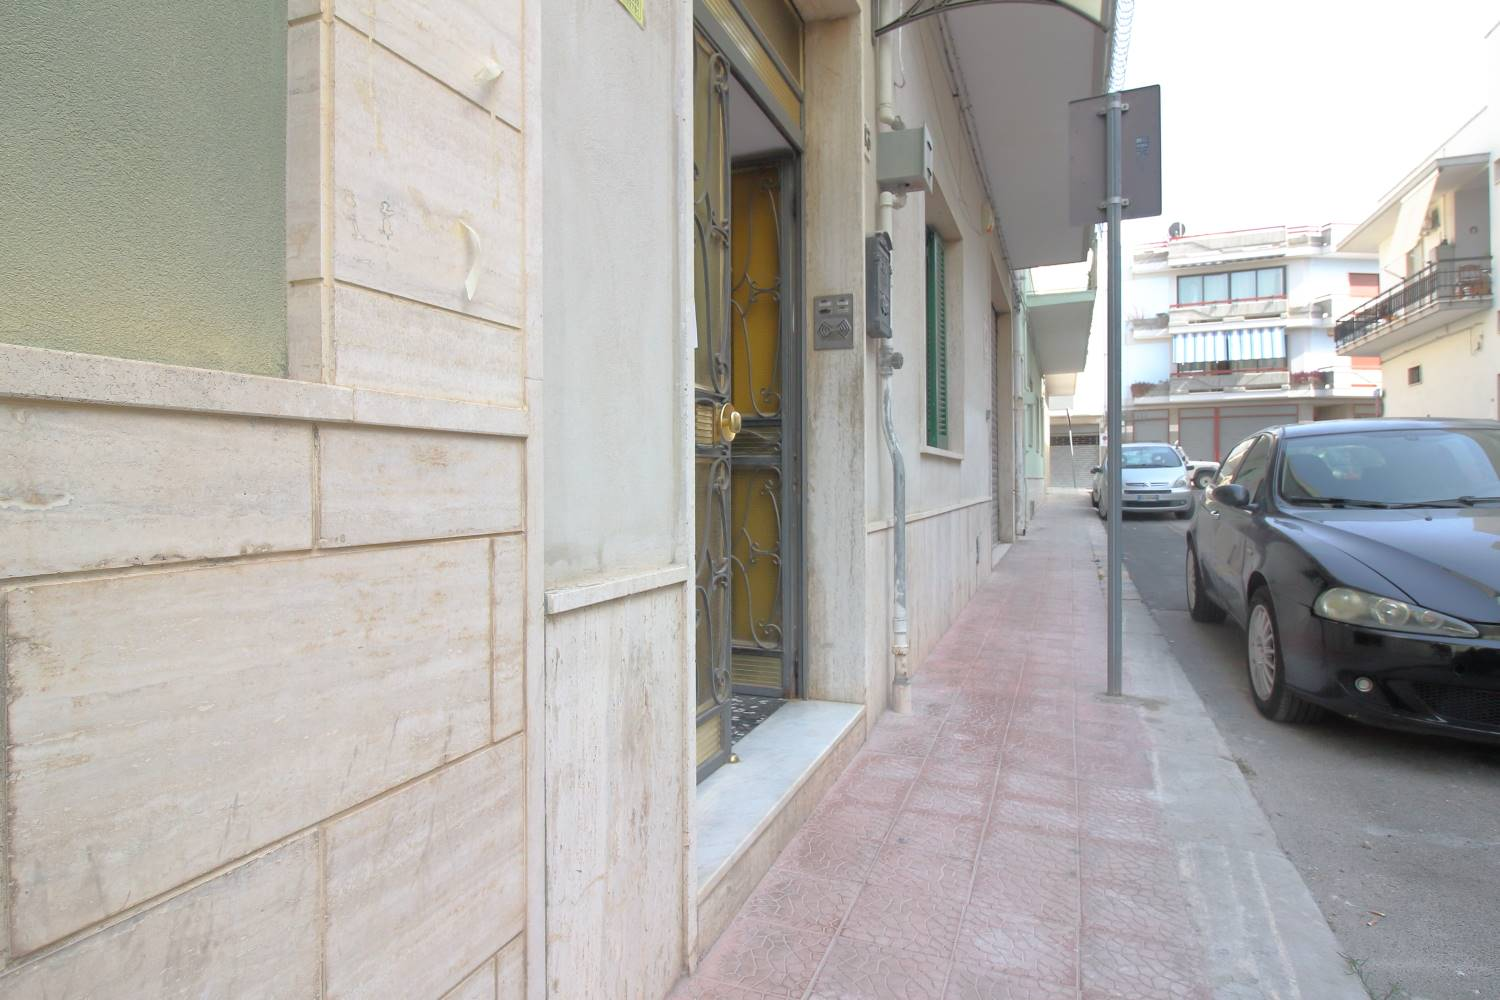 MONOPOLI, Apartment for sale, Habitable, Heating Individual heating system, Energetic class: G, Epi: 165 kwh/m2 year, placed at Ground, composed by: 2 Rooms, Separate kitchen, , 1 Bedroom, 1 Bathroom,